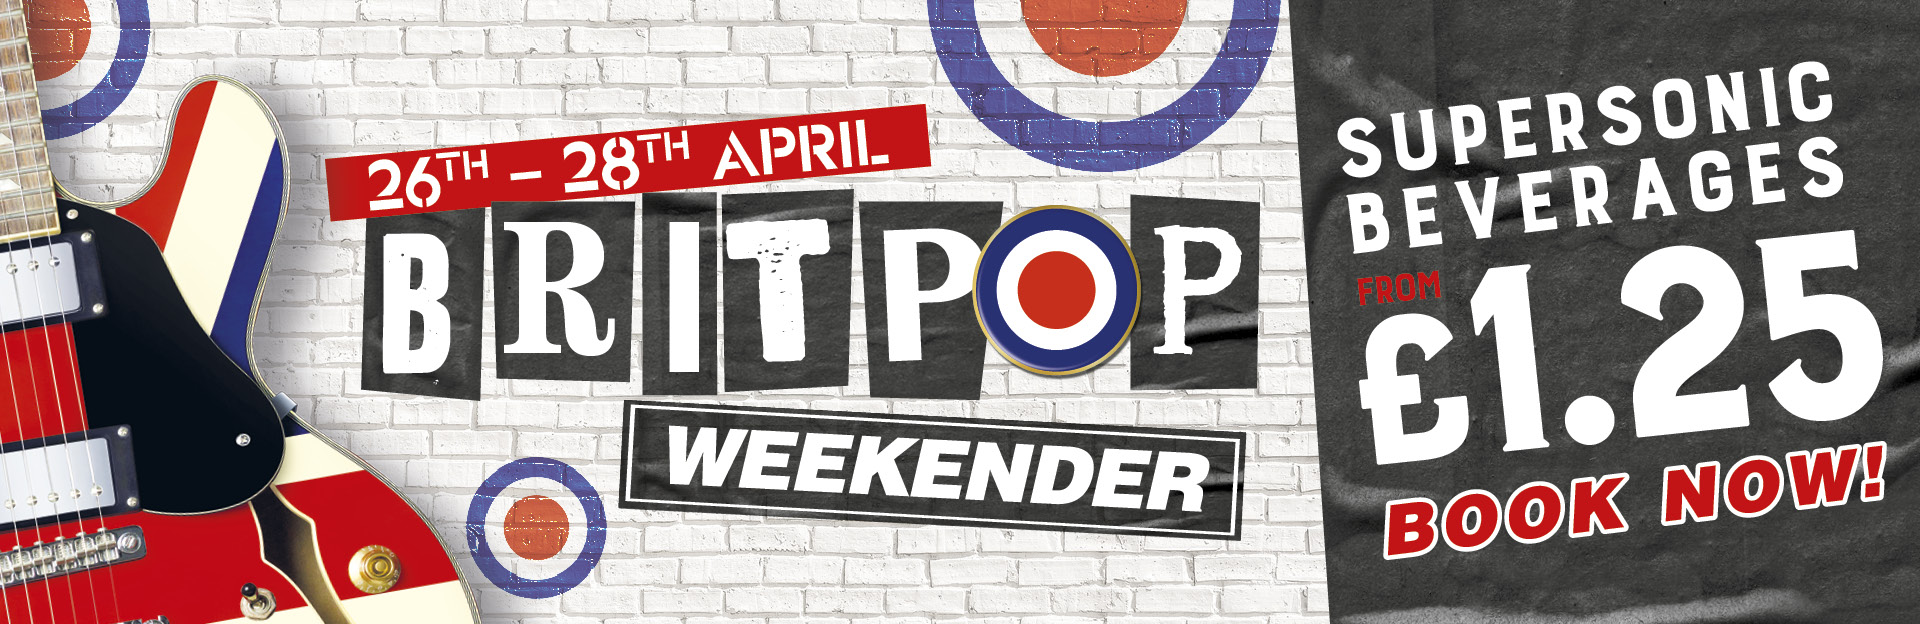 Britpop Weekender at The Piccadilly Tavern